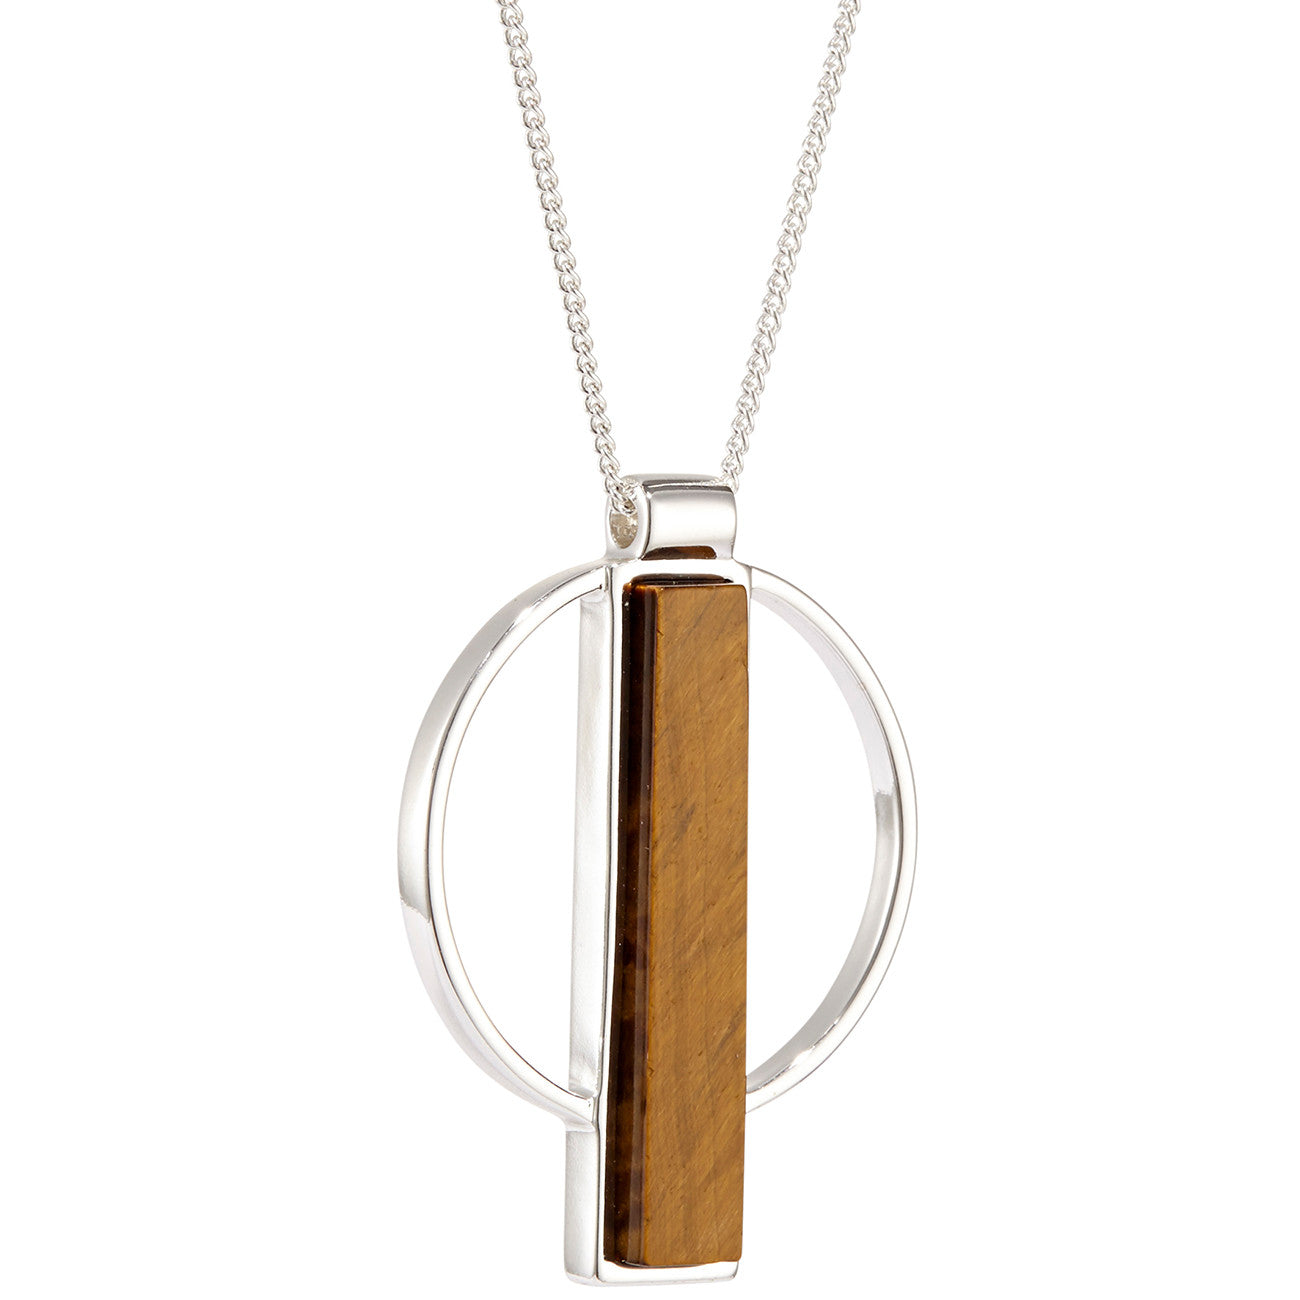 Pollux Pendant by Jenny Bird in Silver with Tiger's Eye Stone